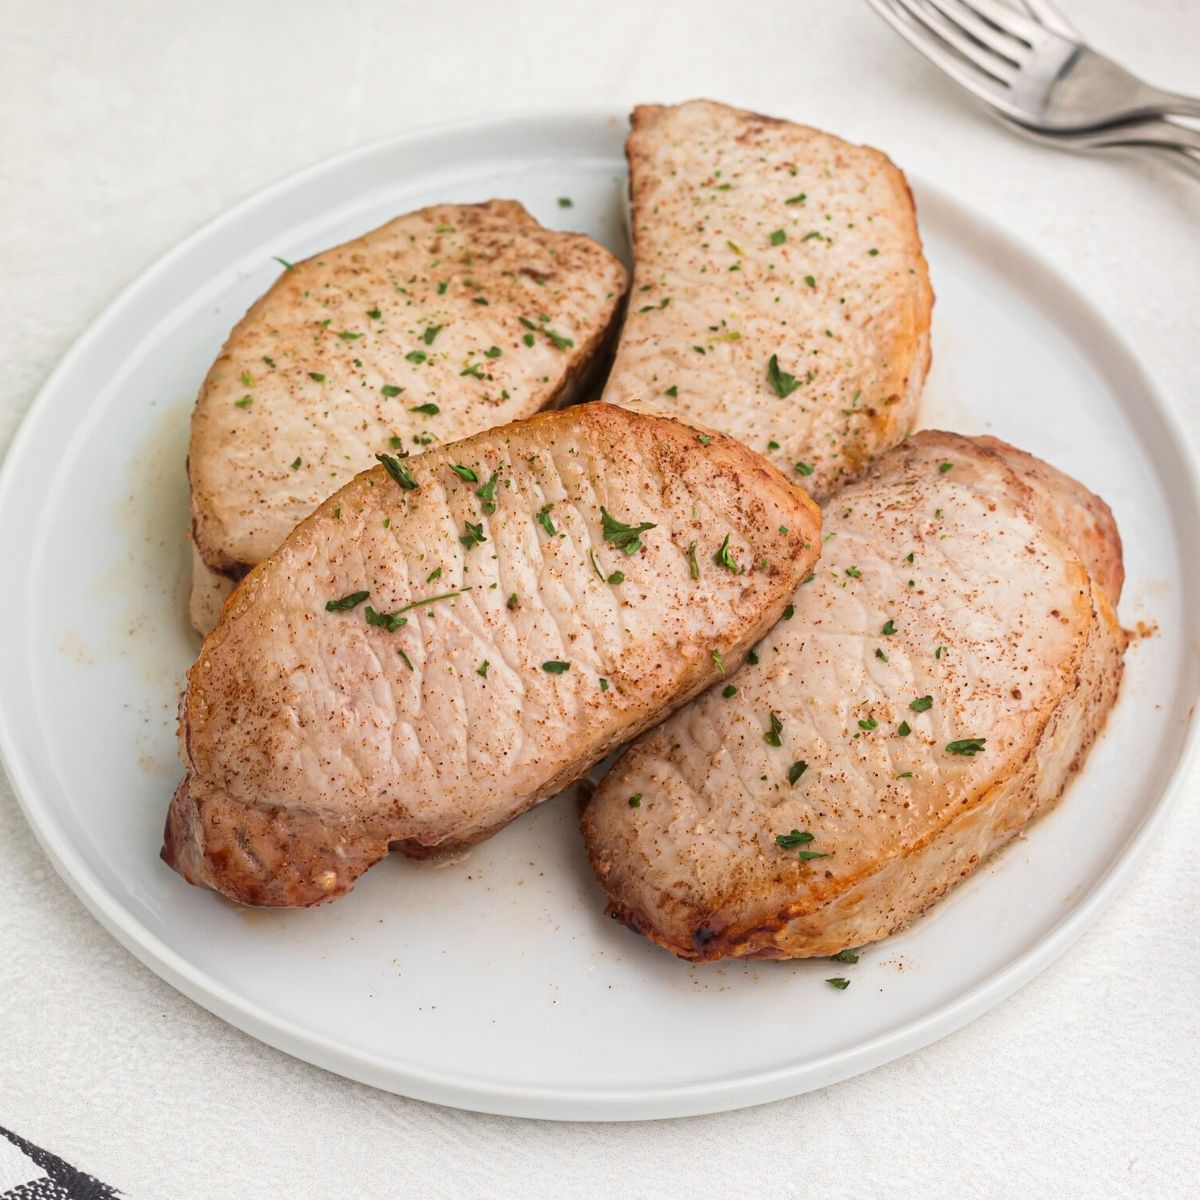 Cooked glazed pork chops cooked and served on a white plate, sprinkled with parsley flakes.